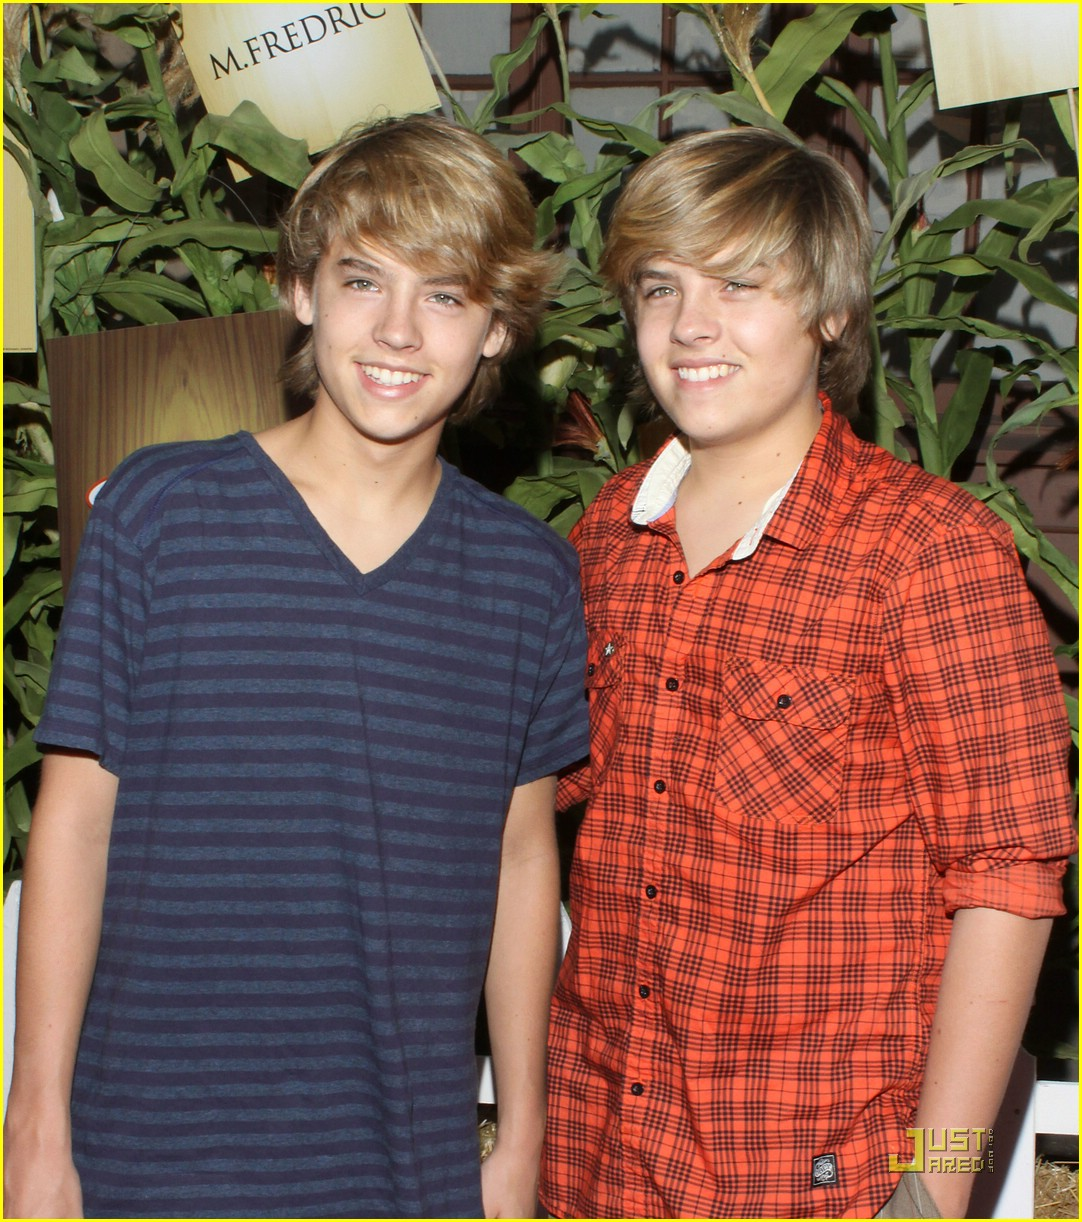 Dylan & Cole Sprouse Have Good Times | Photo 328461 ...